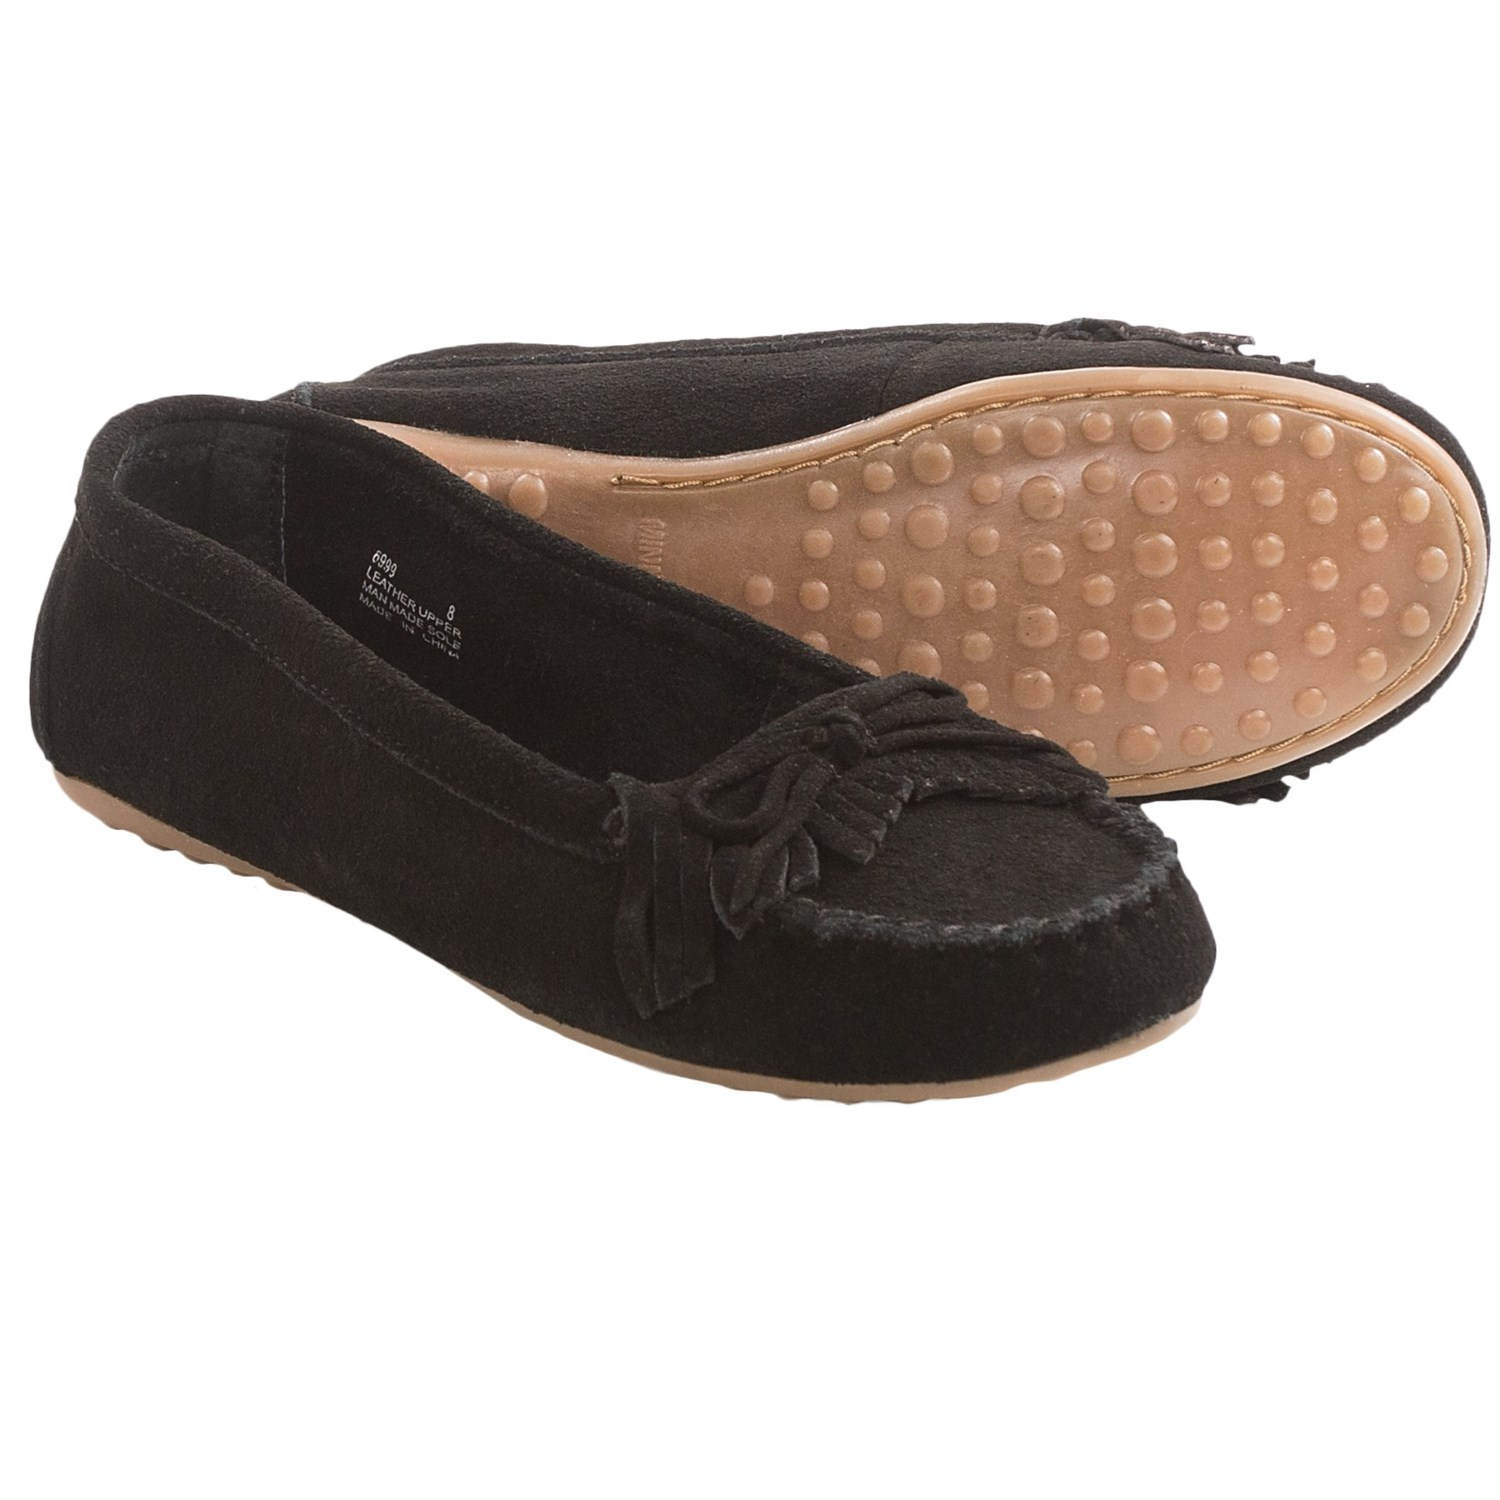 Minnetonka kathleen kilty moccasins for women save 40